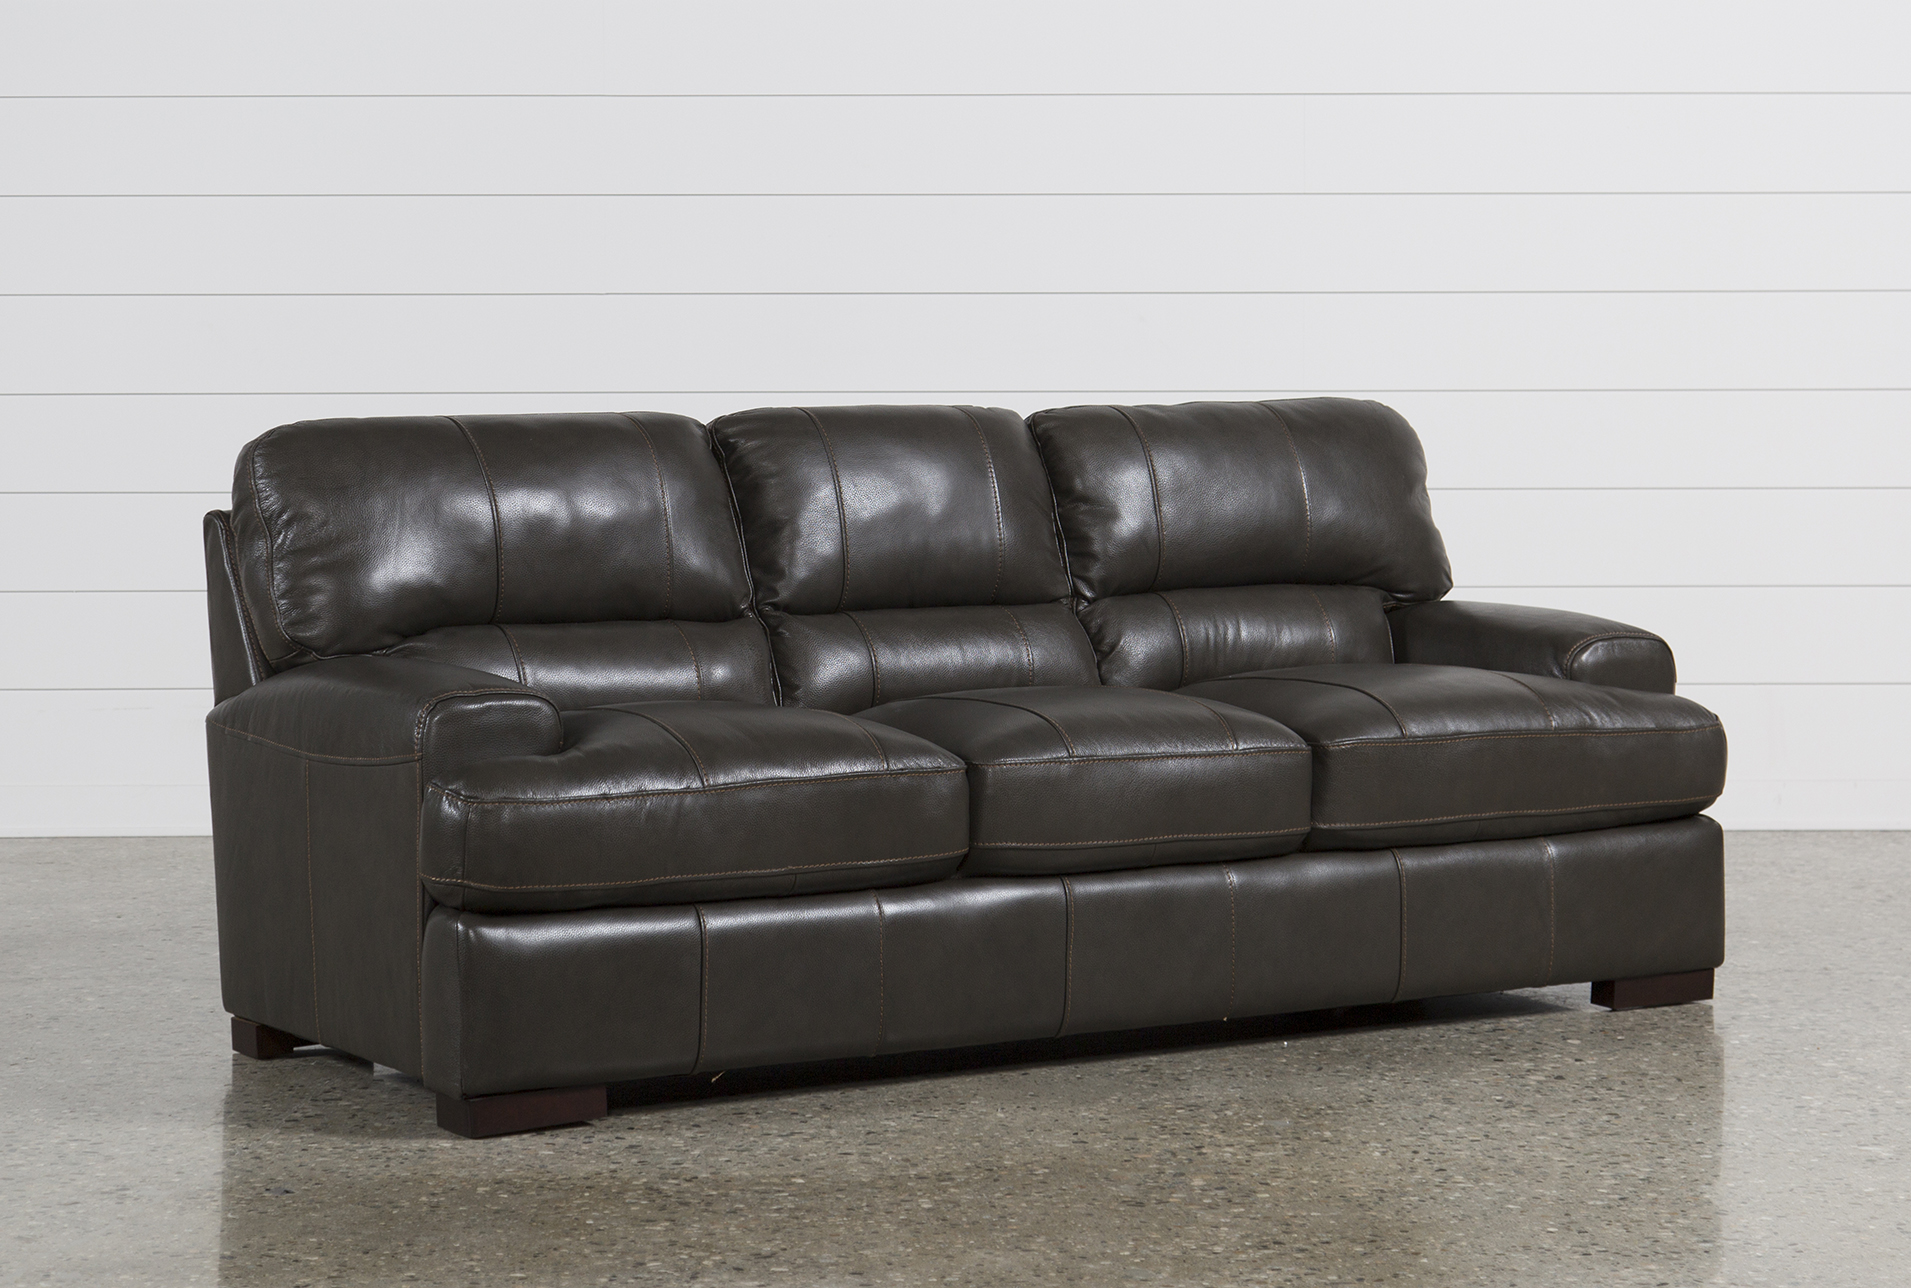 Andrew Leather Sofa (Qty: 1) Has Been Successfully Added To Your Cart.